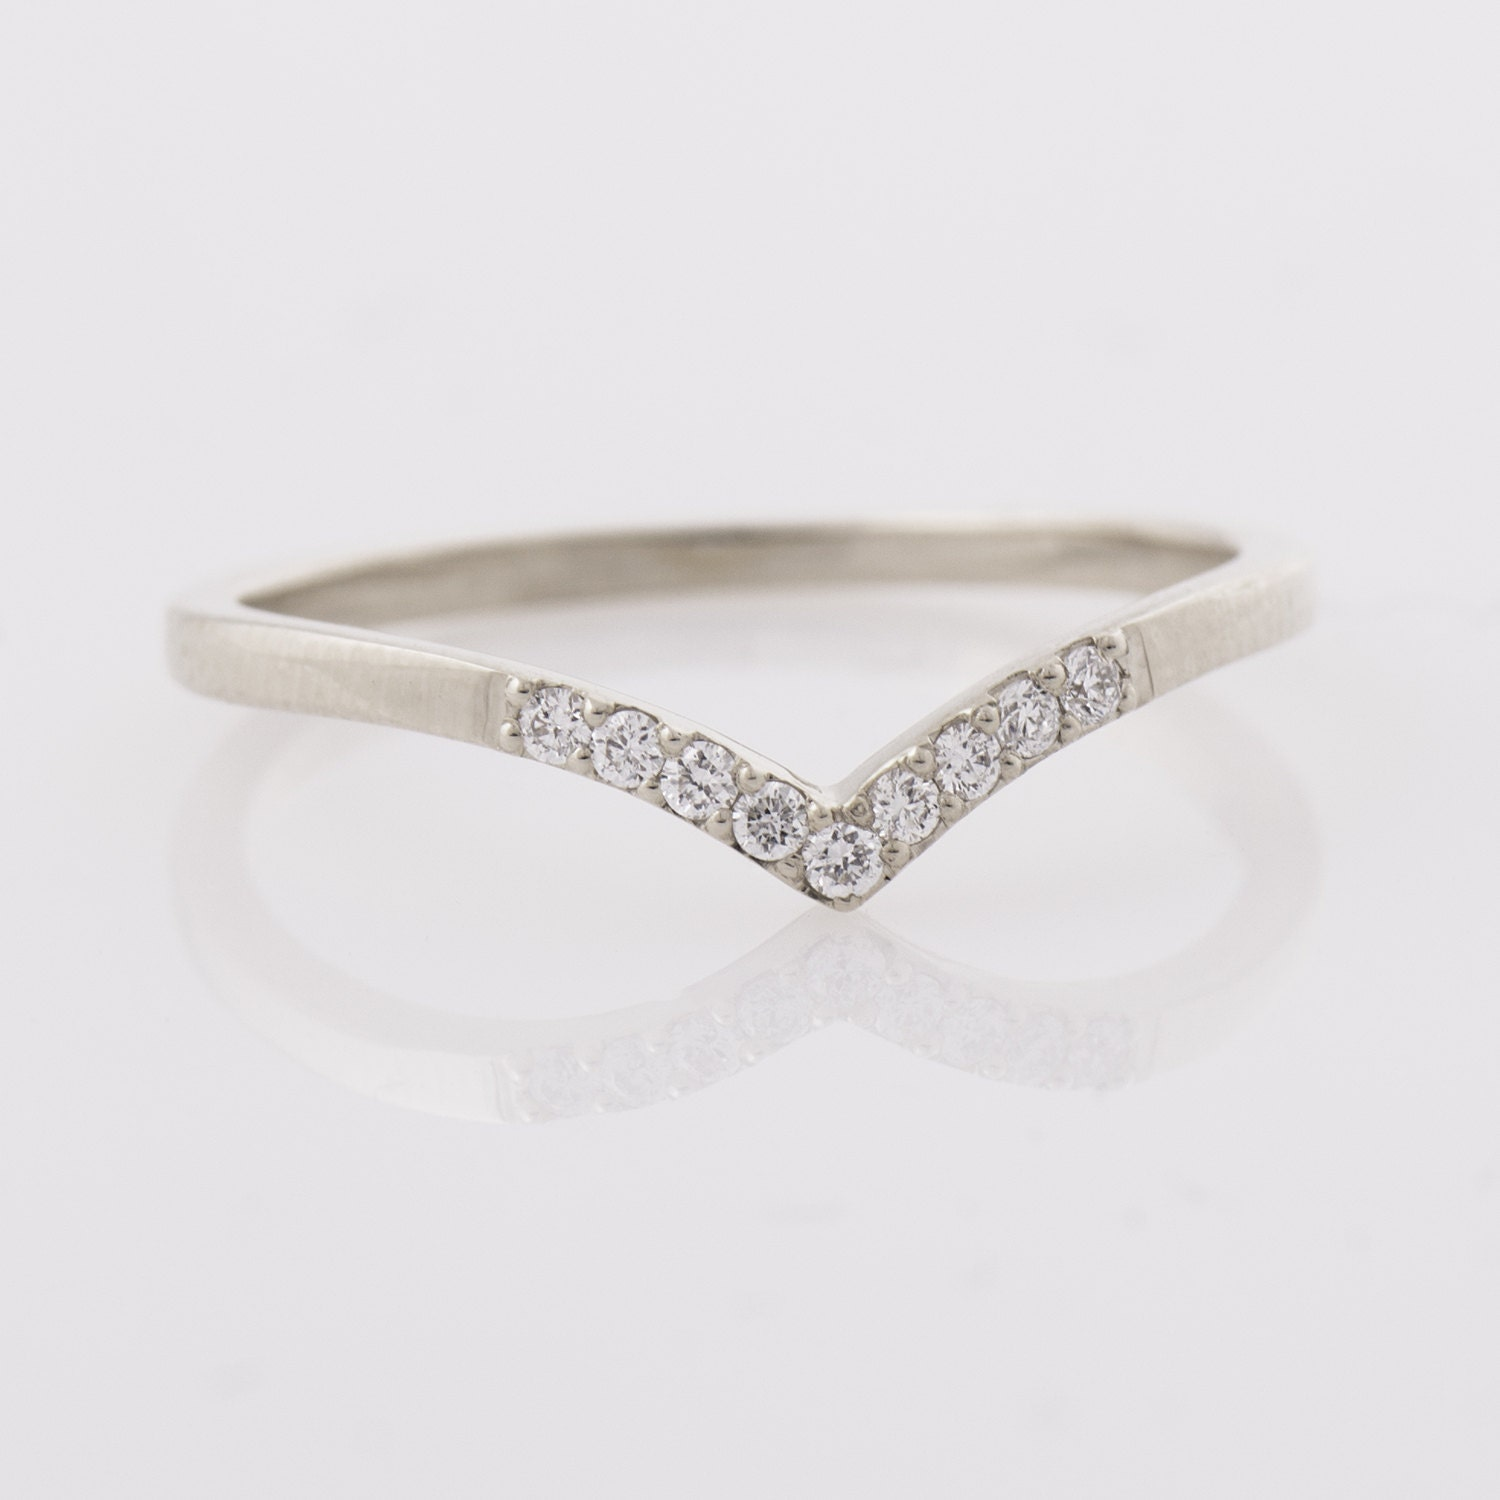 eternity beaverbrooks thin large with bands ring diamonds band diamond platinum context gold wedding half p